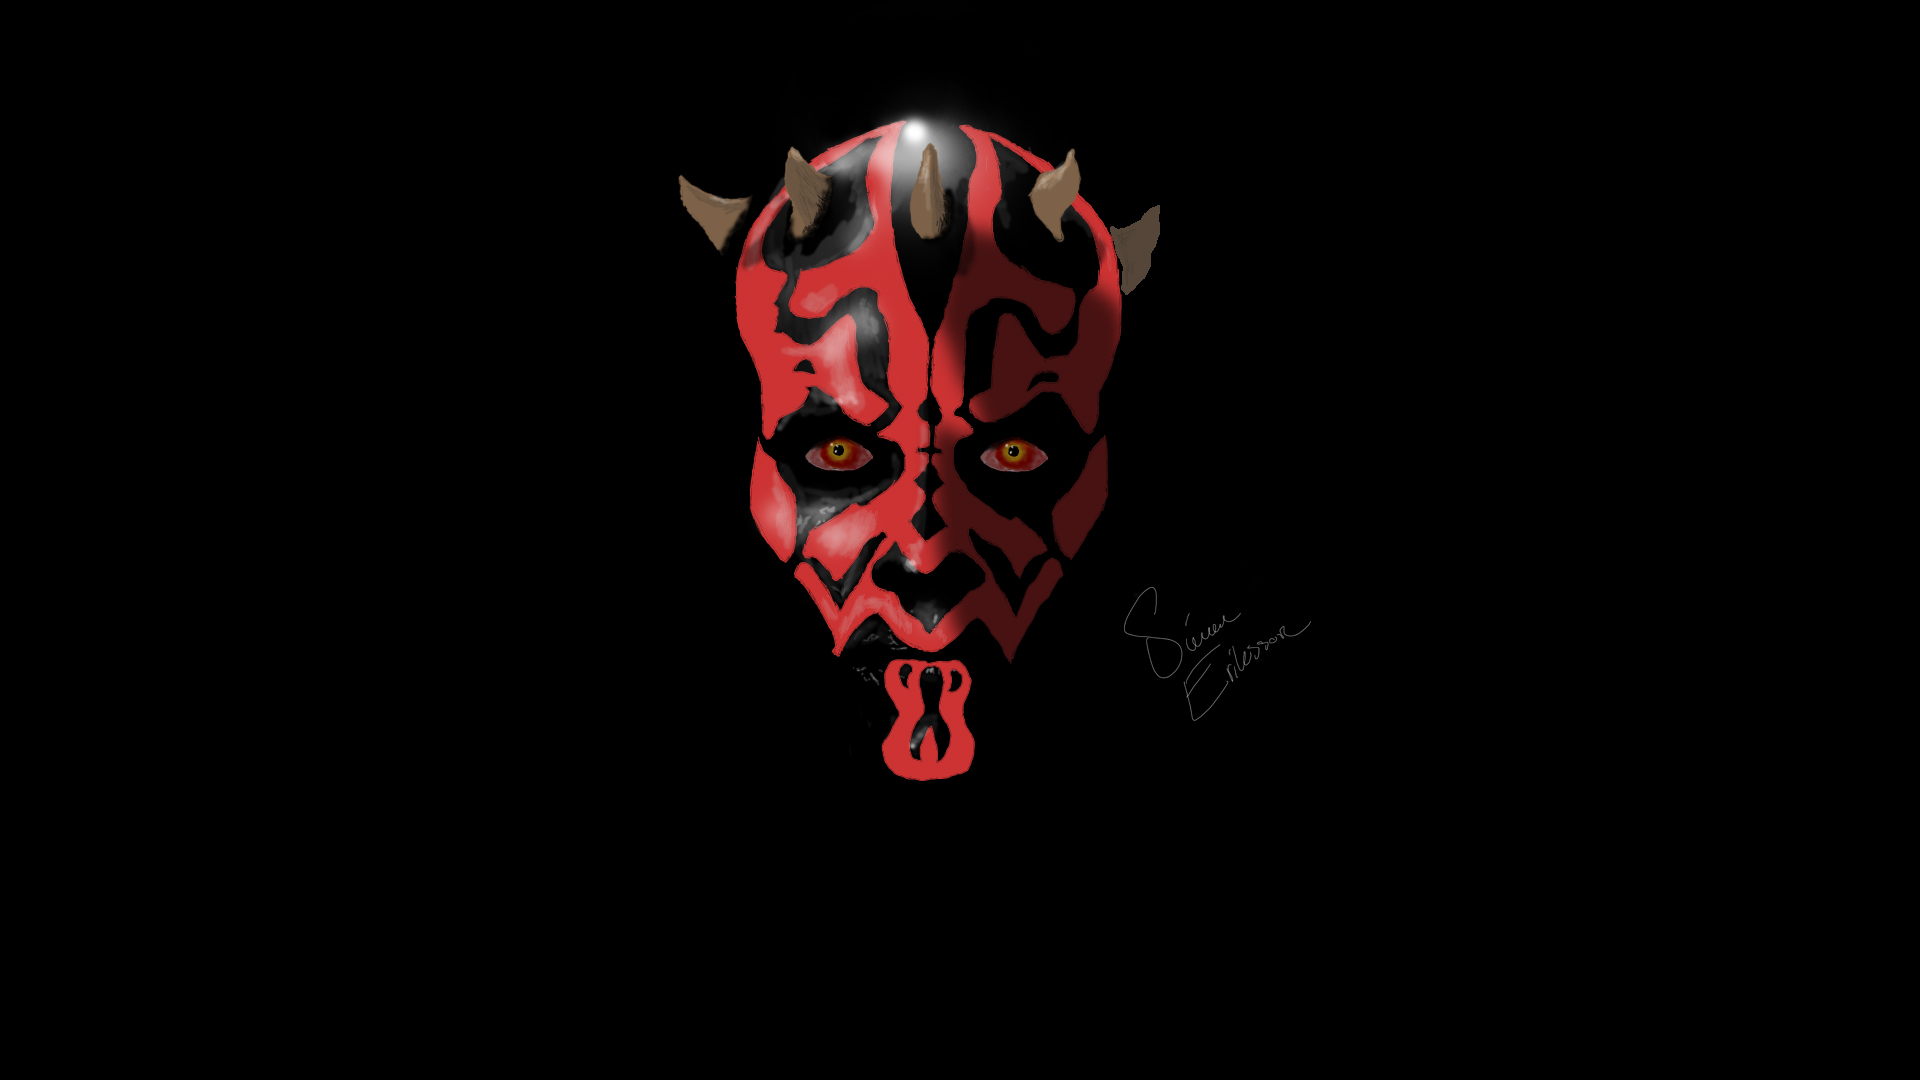 Darth-Maul-Collection-For-Free-Download-wallpaper-wp3804390